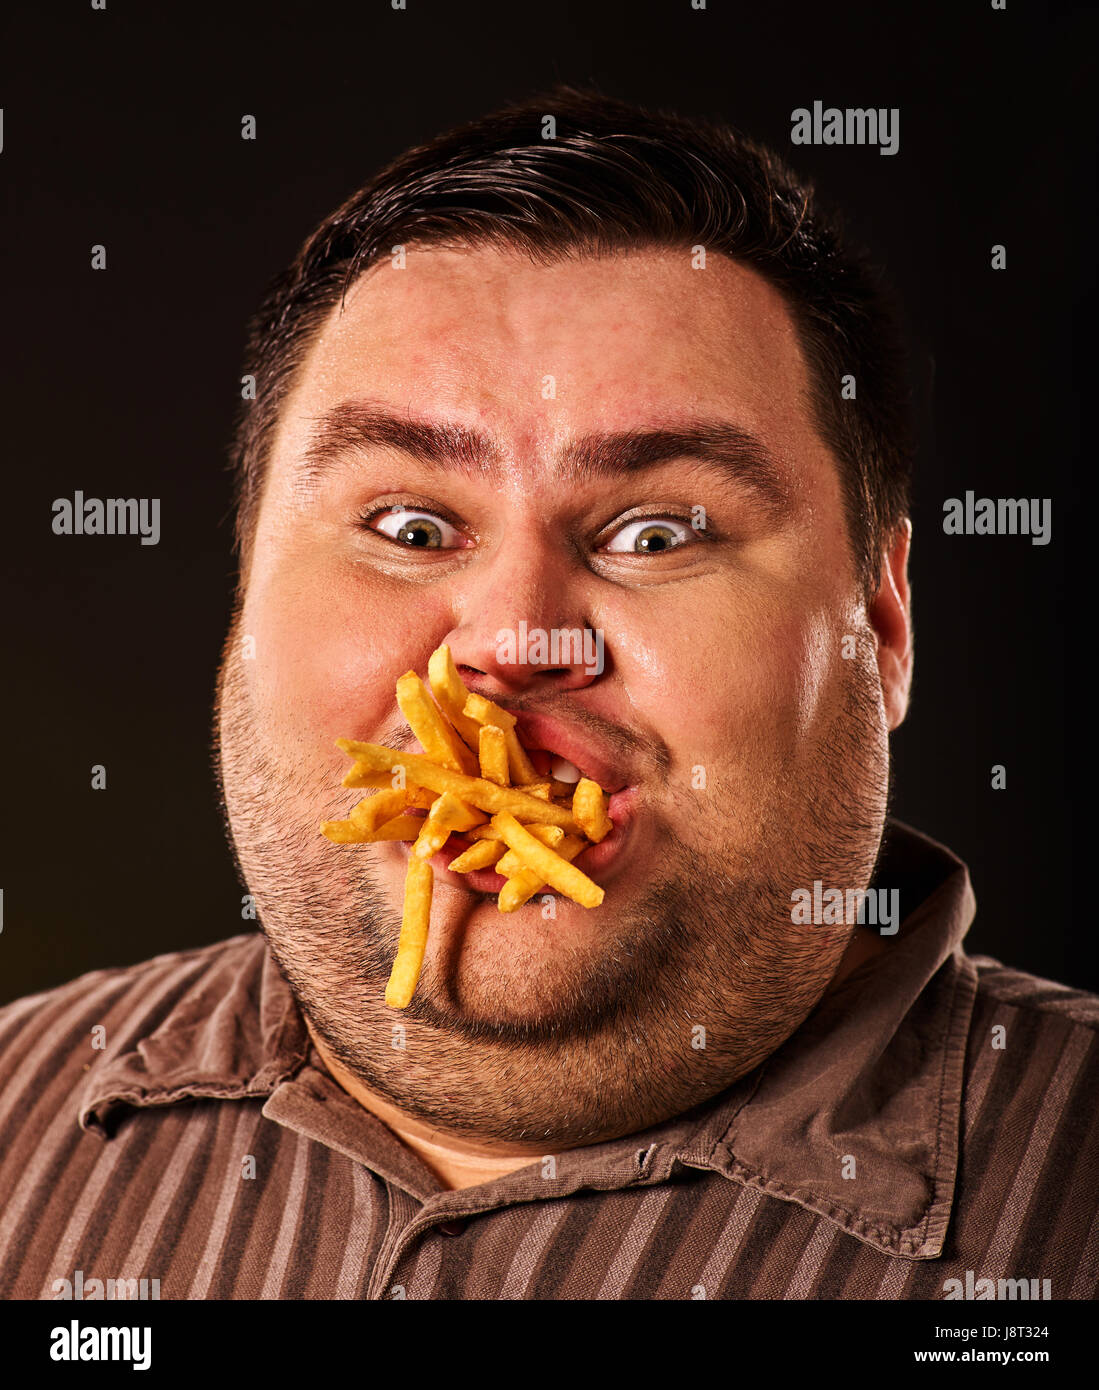 fat man eating fast food french fries for overweight person stock